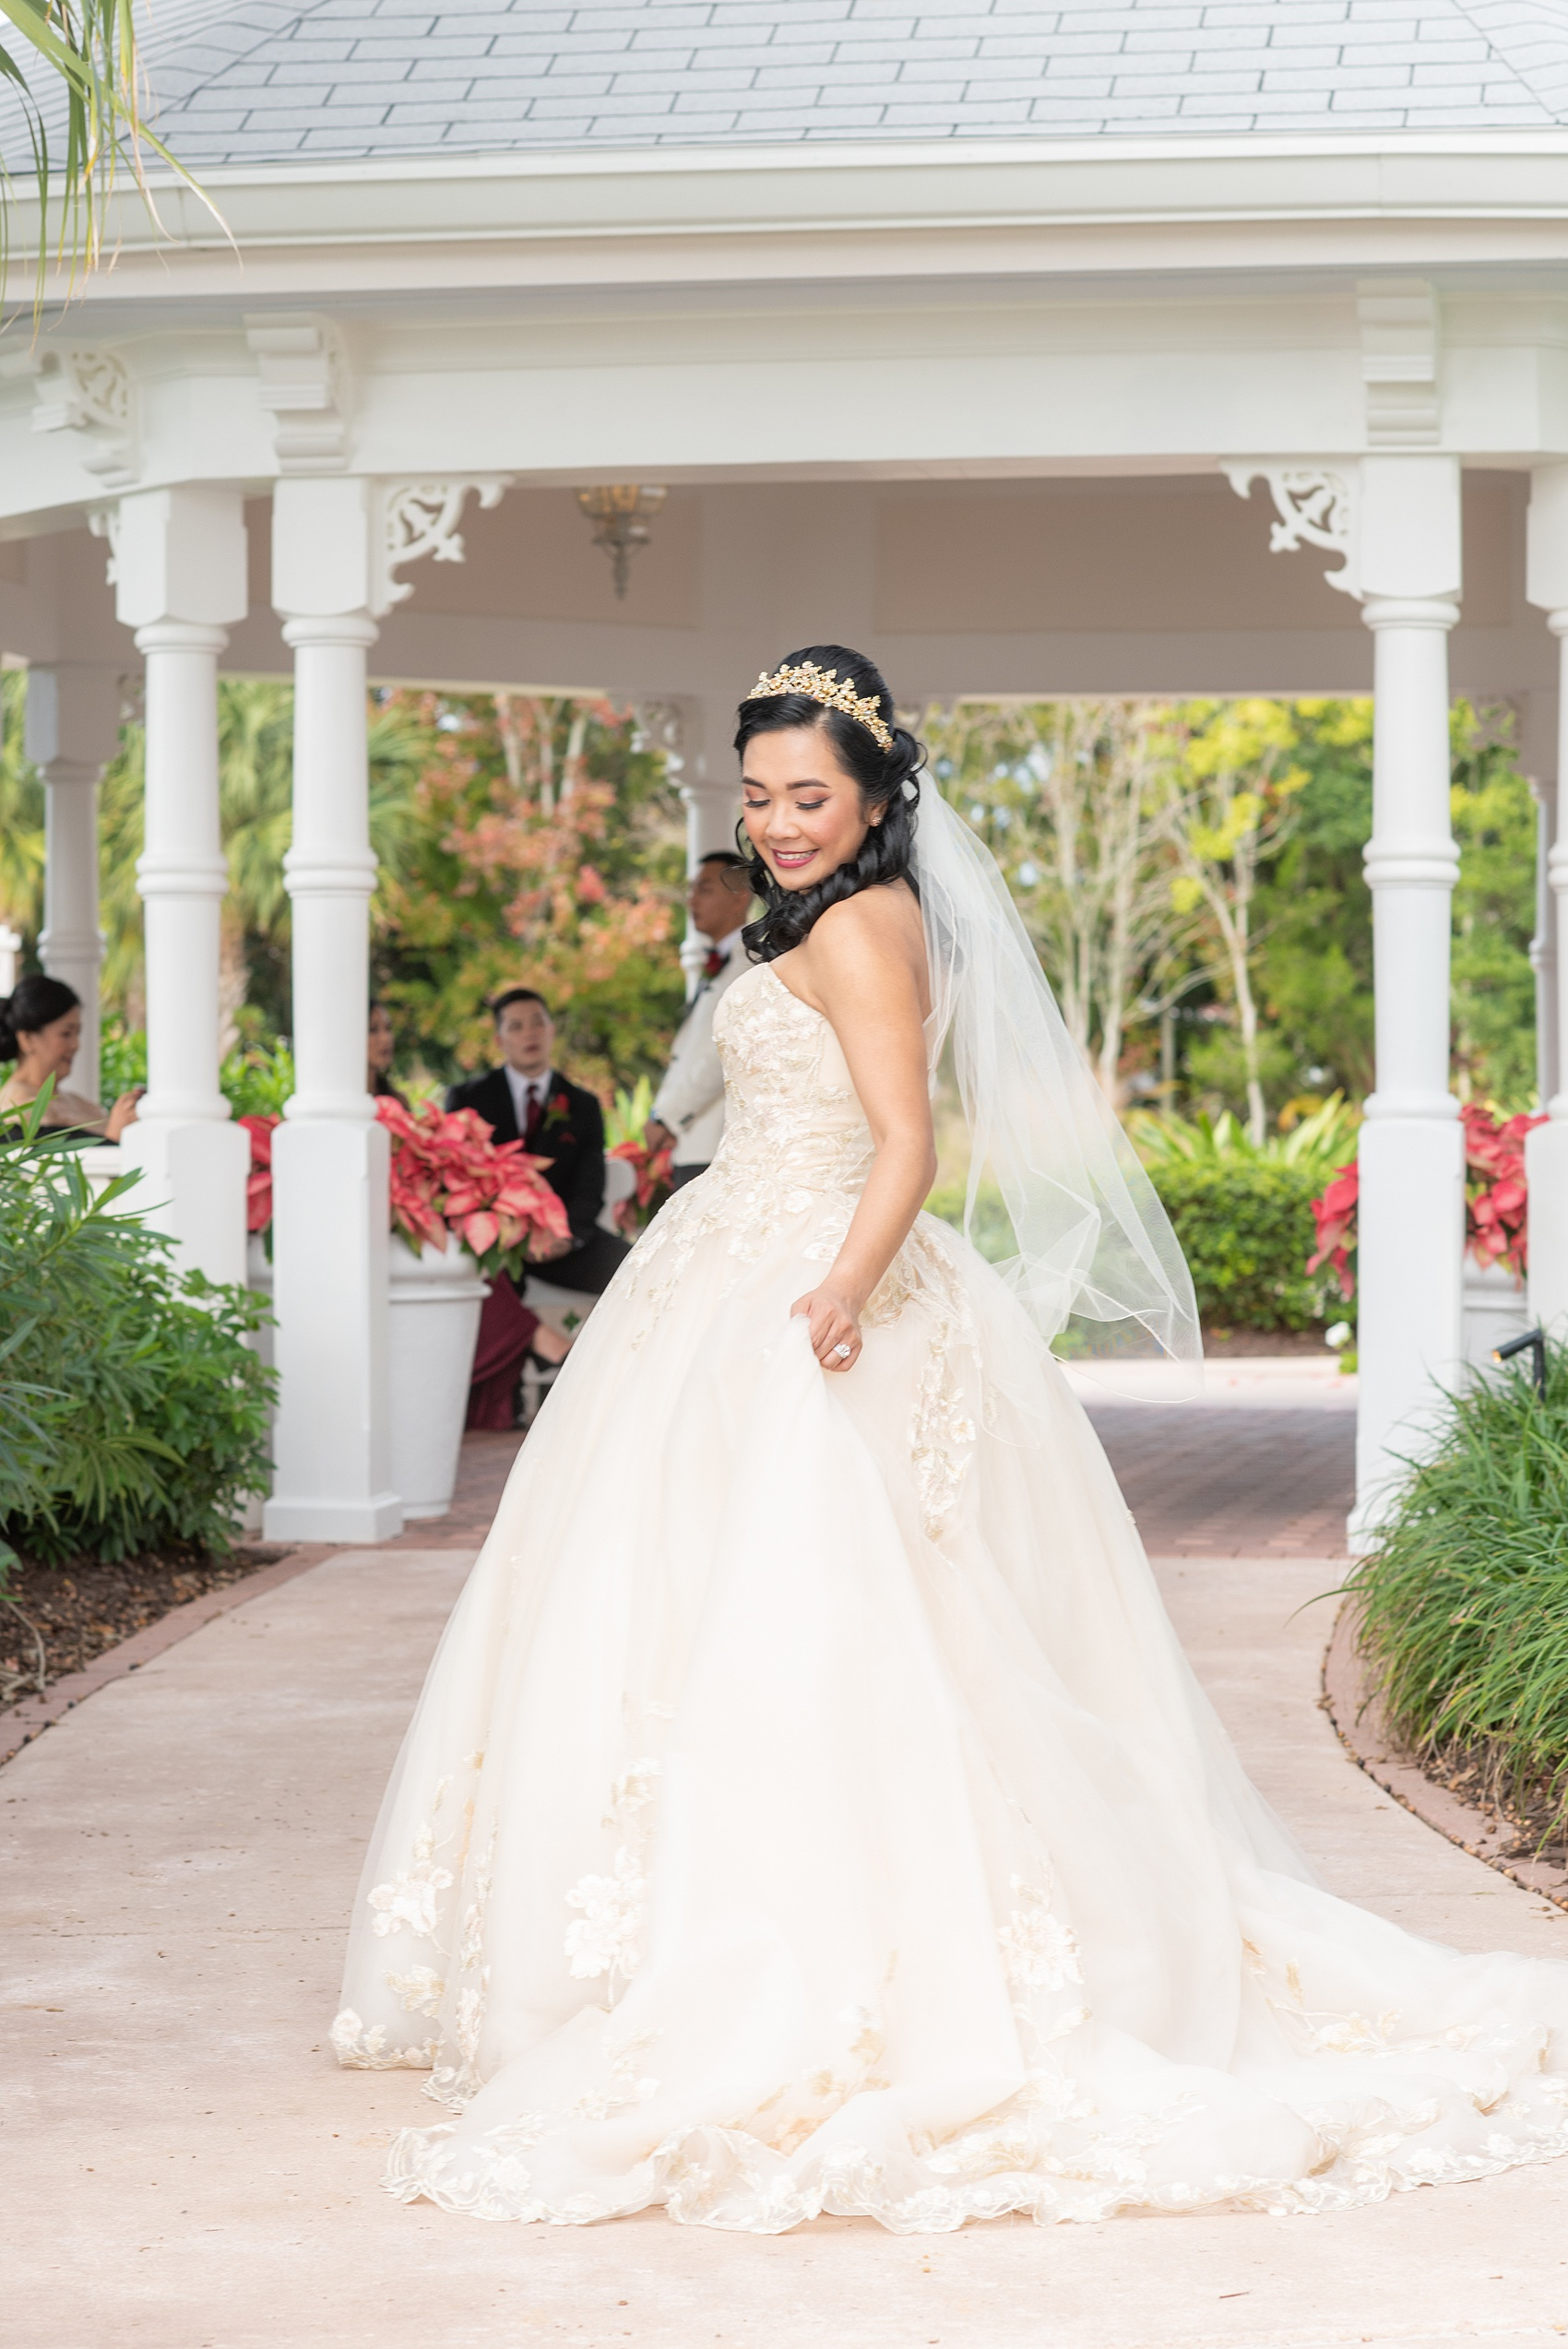 Photographs of a Walt Disney World bride by Mikkel Paige Photography. As a lover of Beauty and the Beast, the bride wove details from the classic Disney film into her wedding. Her beautiful rose embroidered dress was befitting of a princess. She got ready for her day at the dream resort, the Grand Floridian. Her hair was twisted into a fun, rose bun. #disneywedding #disneybride #waltdisneyworld #DisneyWorldWedding